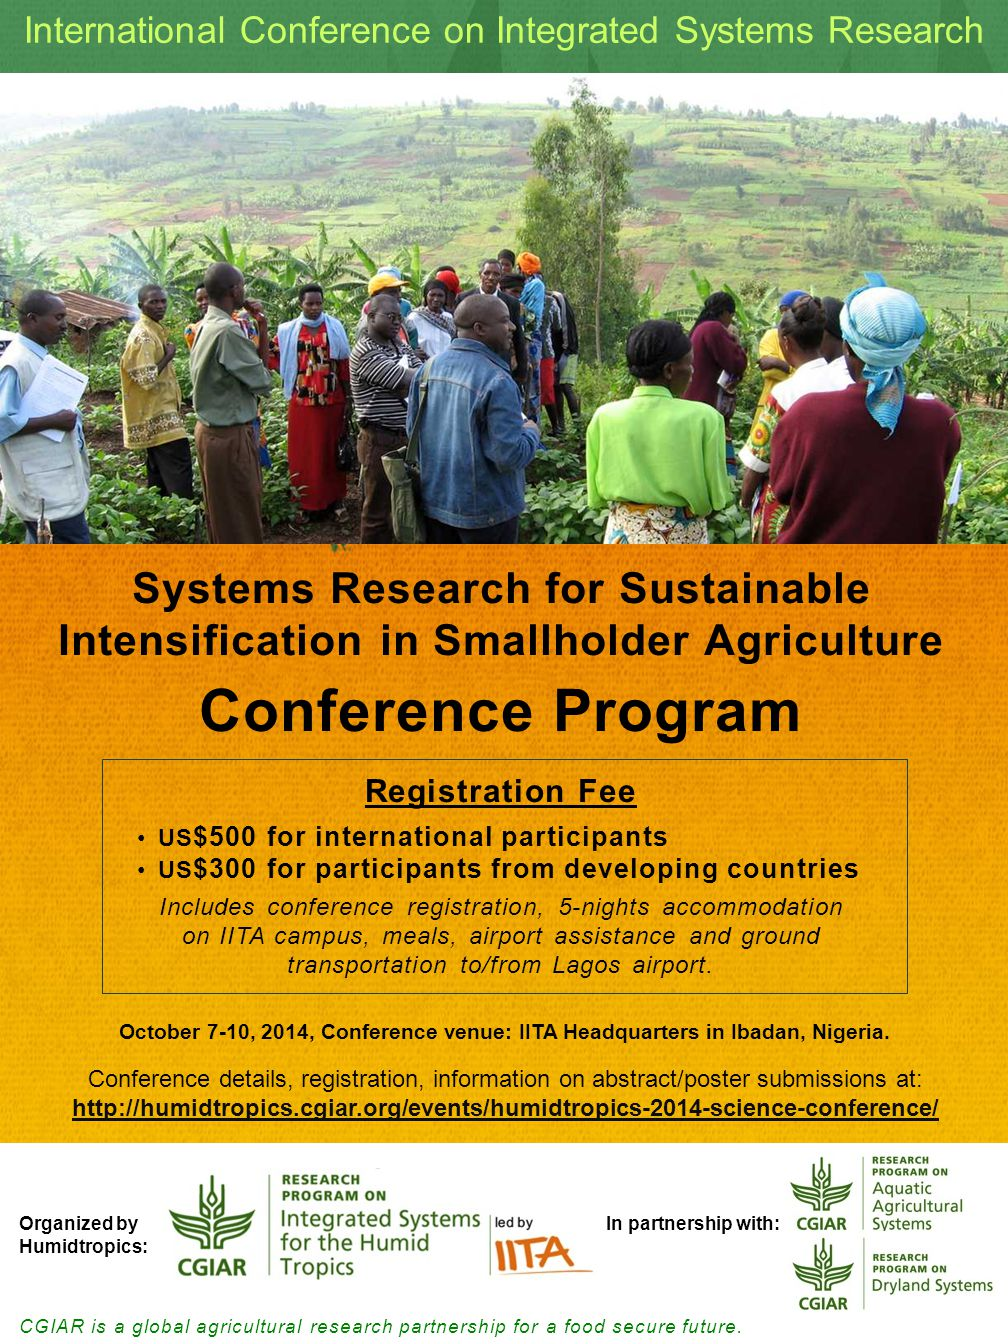 Systems Research for Sustainable Intensification in Smallholder Agriculture International Conference on Integrated Systems Research October 7-10, 2014, Conference venue: IITA Headquarters in Ibadan, Nigeria.